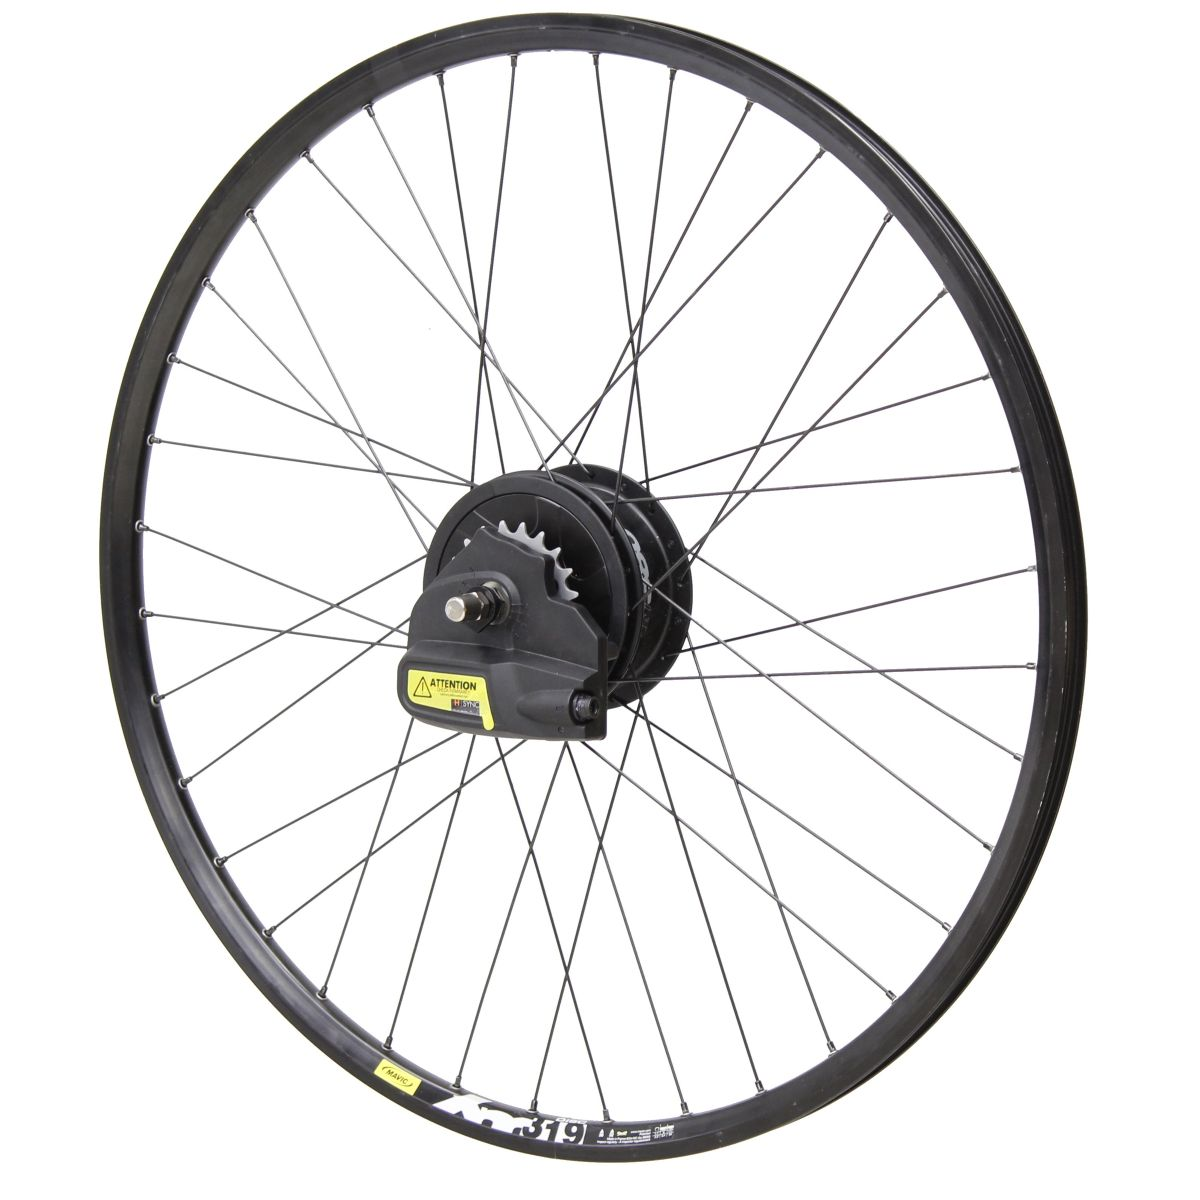 ROSE Hinterrad Mavic XM 319 Disc / Nuvinci N380 (B-Ware) | City